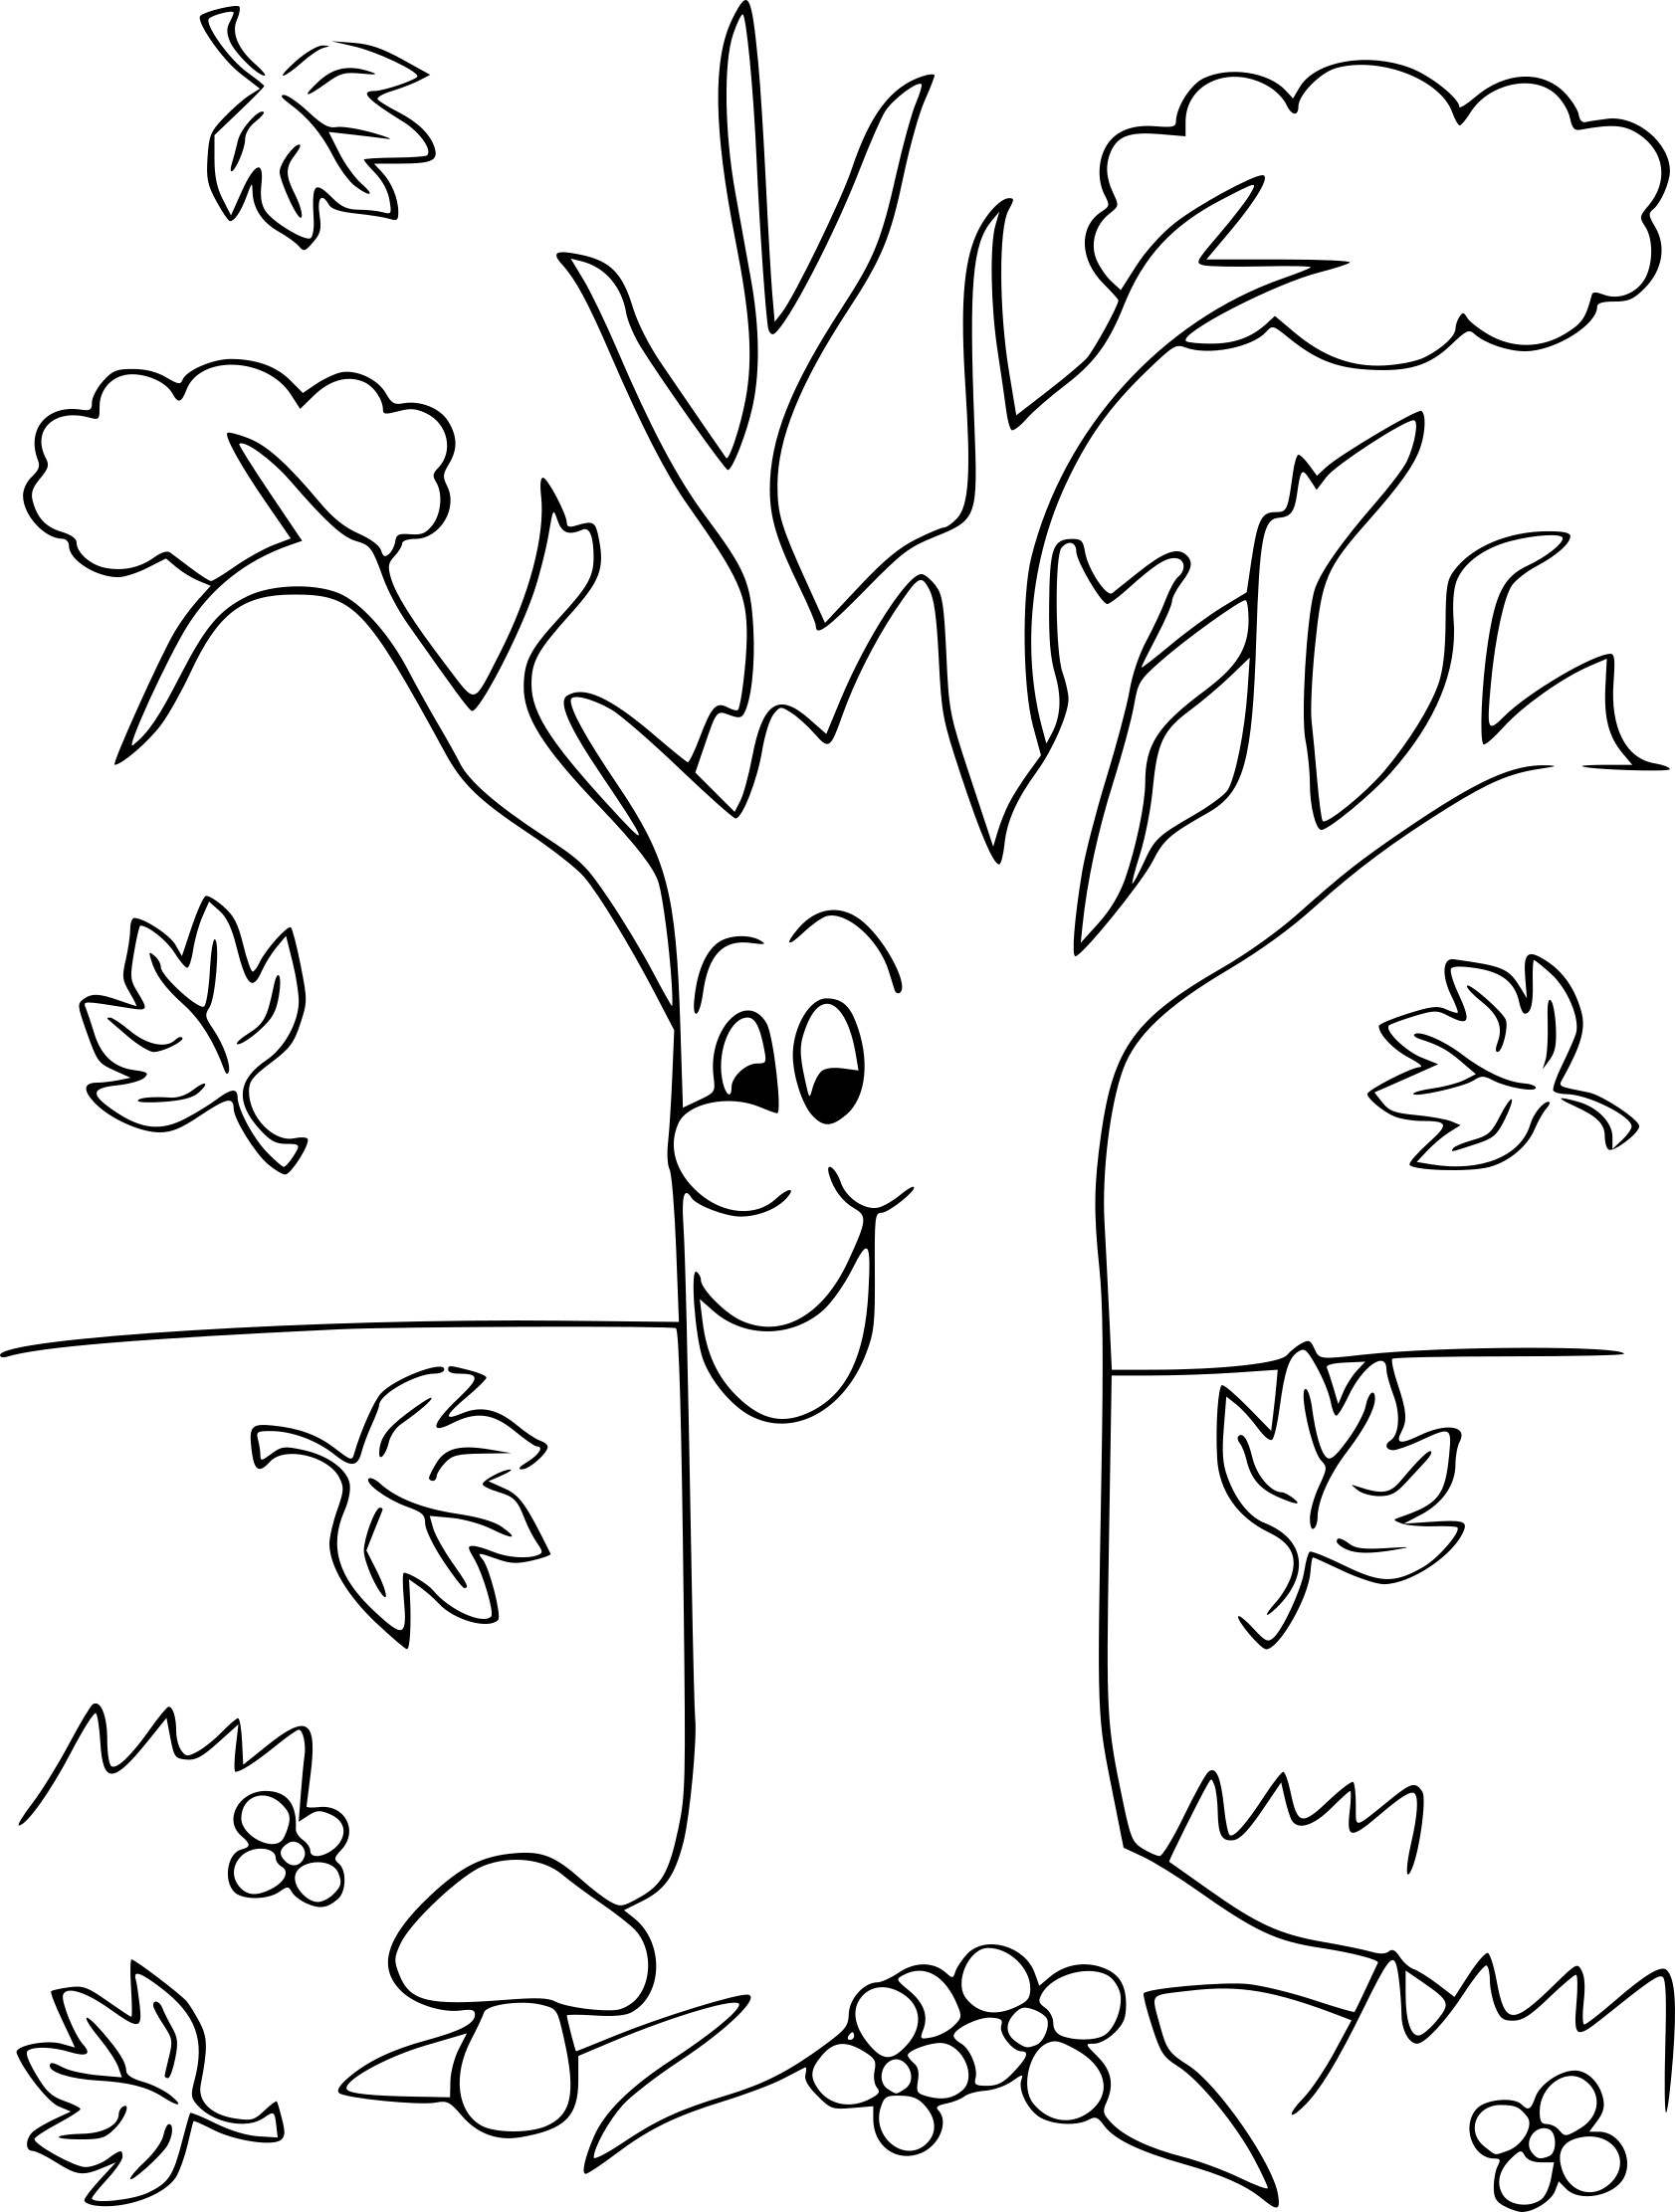 automne maternelle dessin